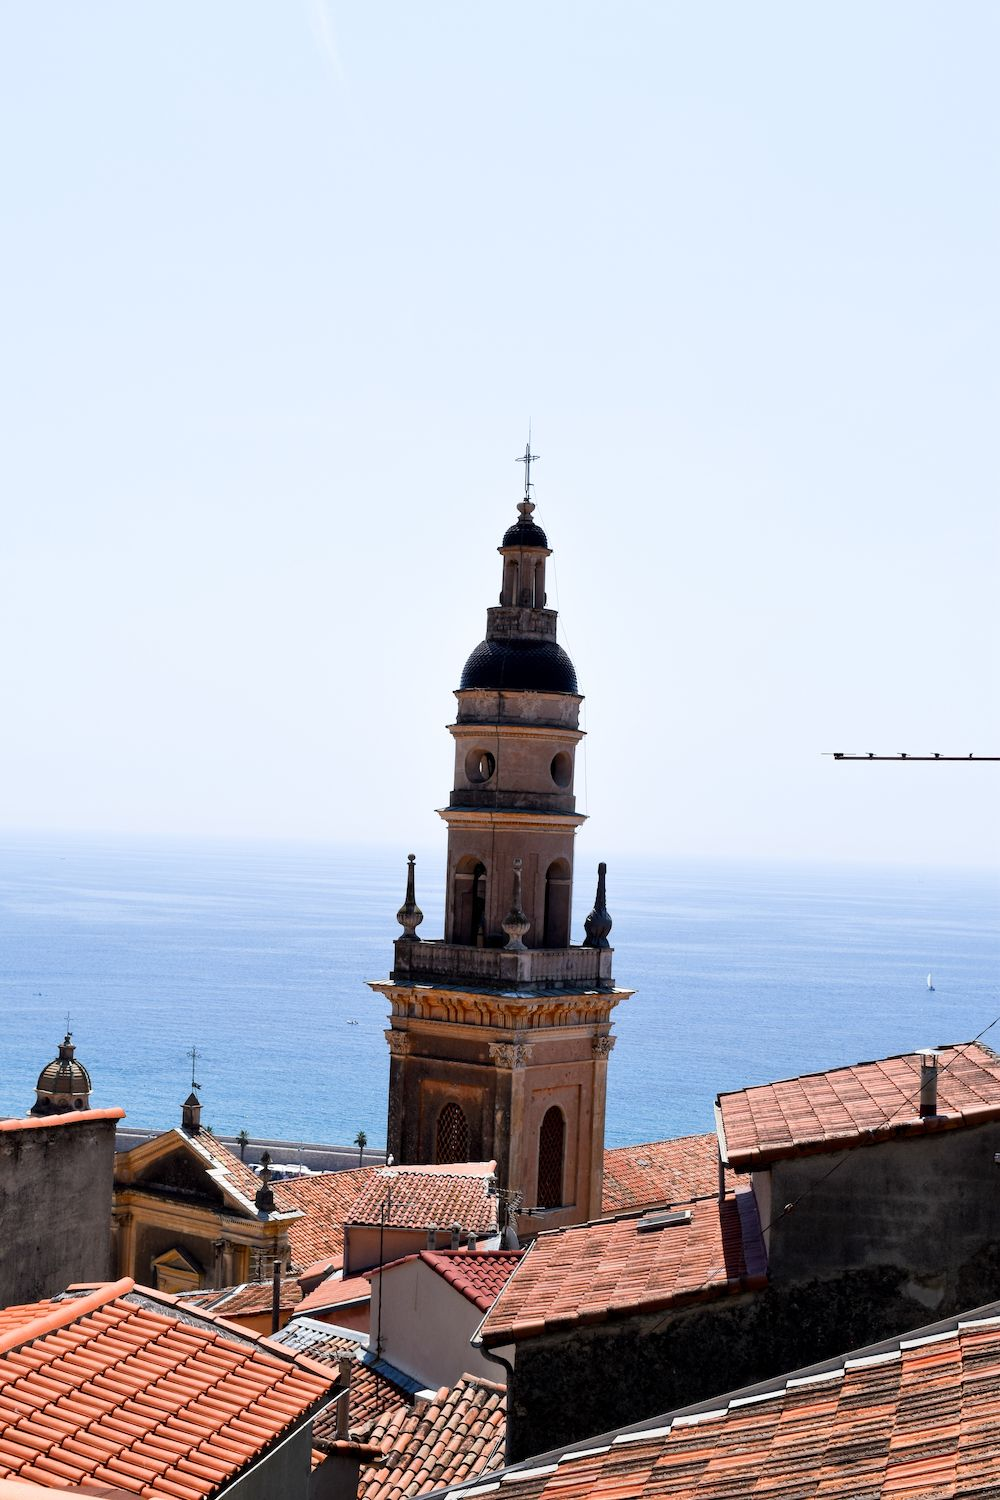 Views of Menton, France